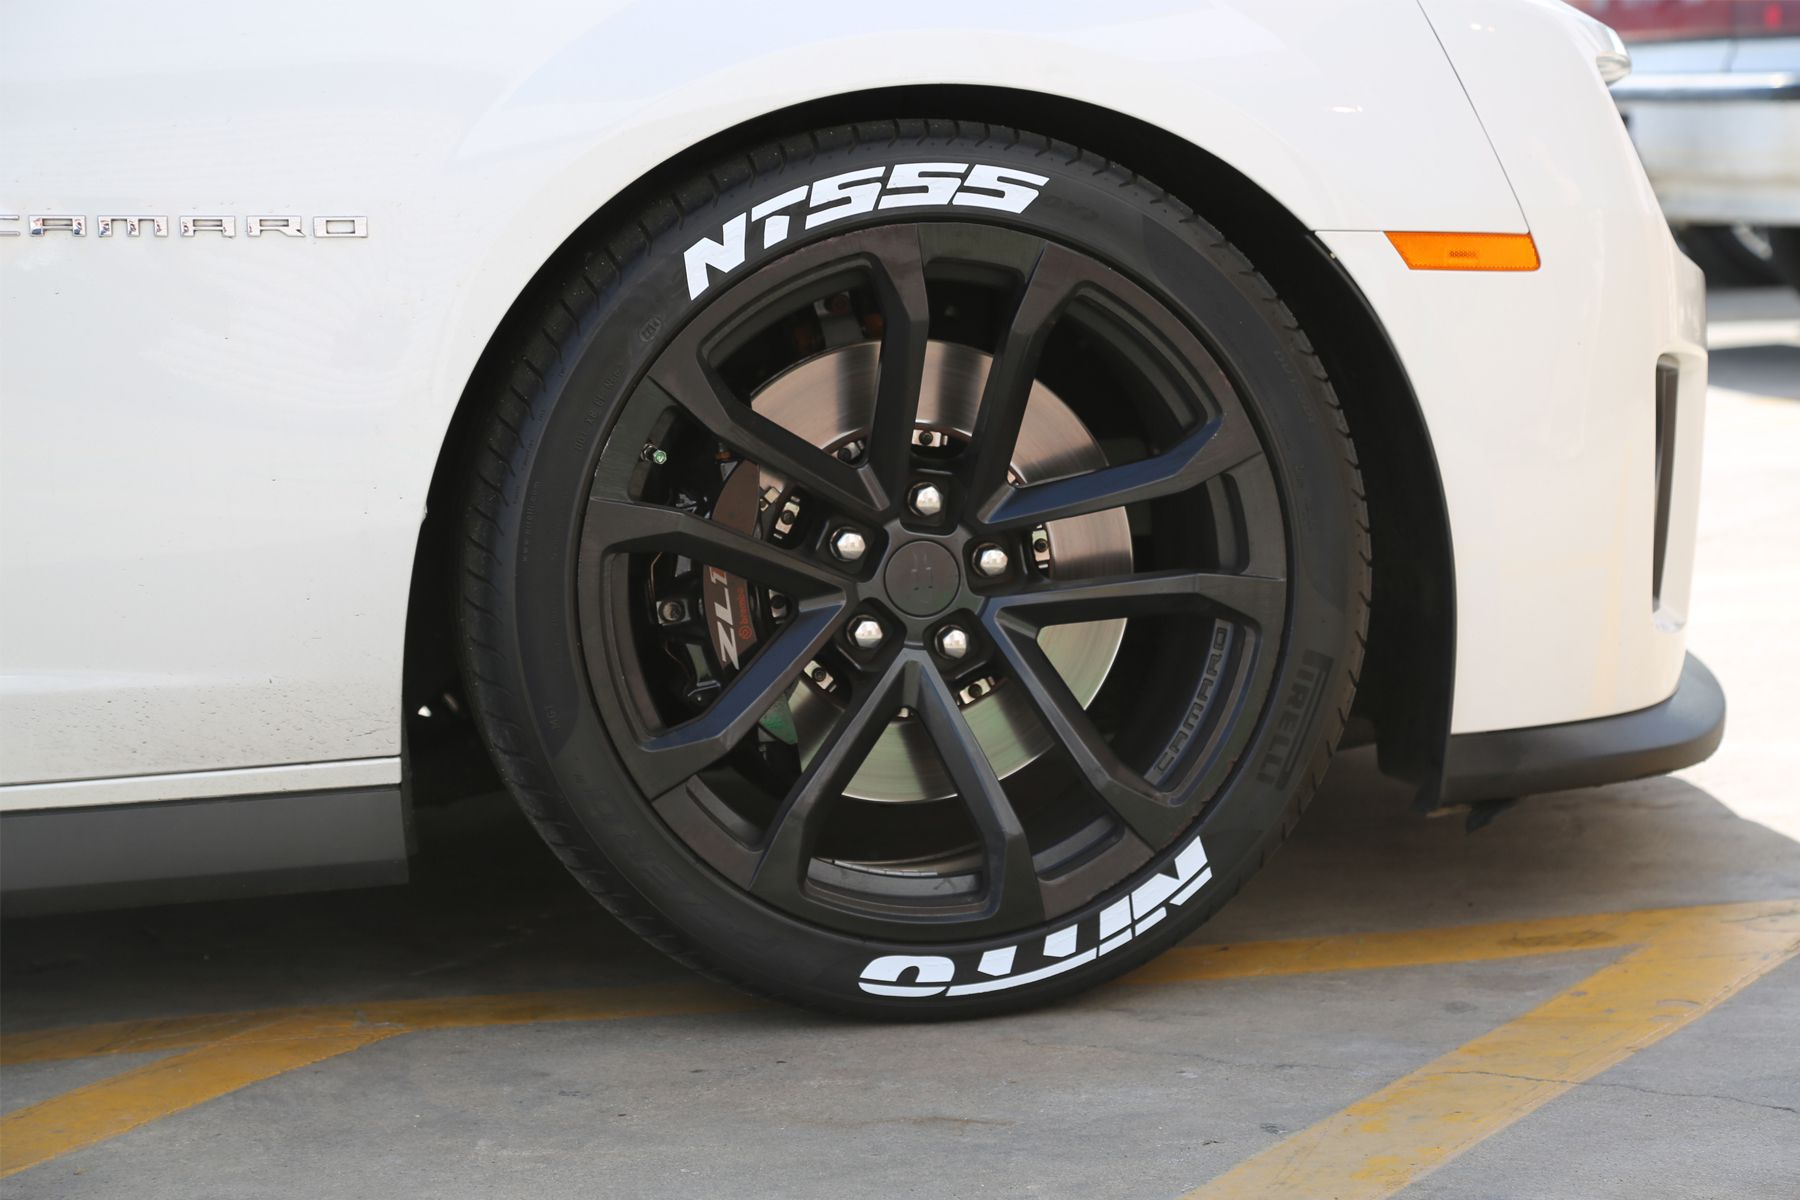 Chevy Camaro Zl1 Tire Stickers White Nitto Nt555 Tire